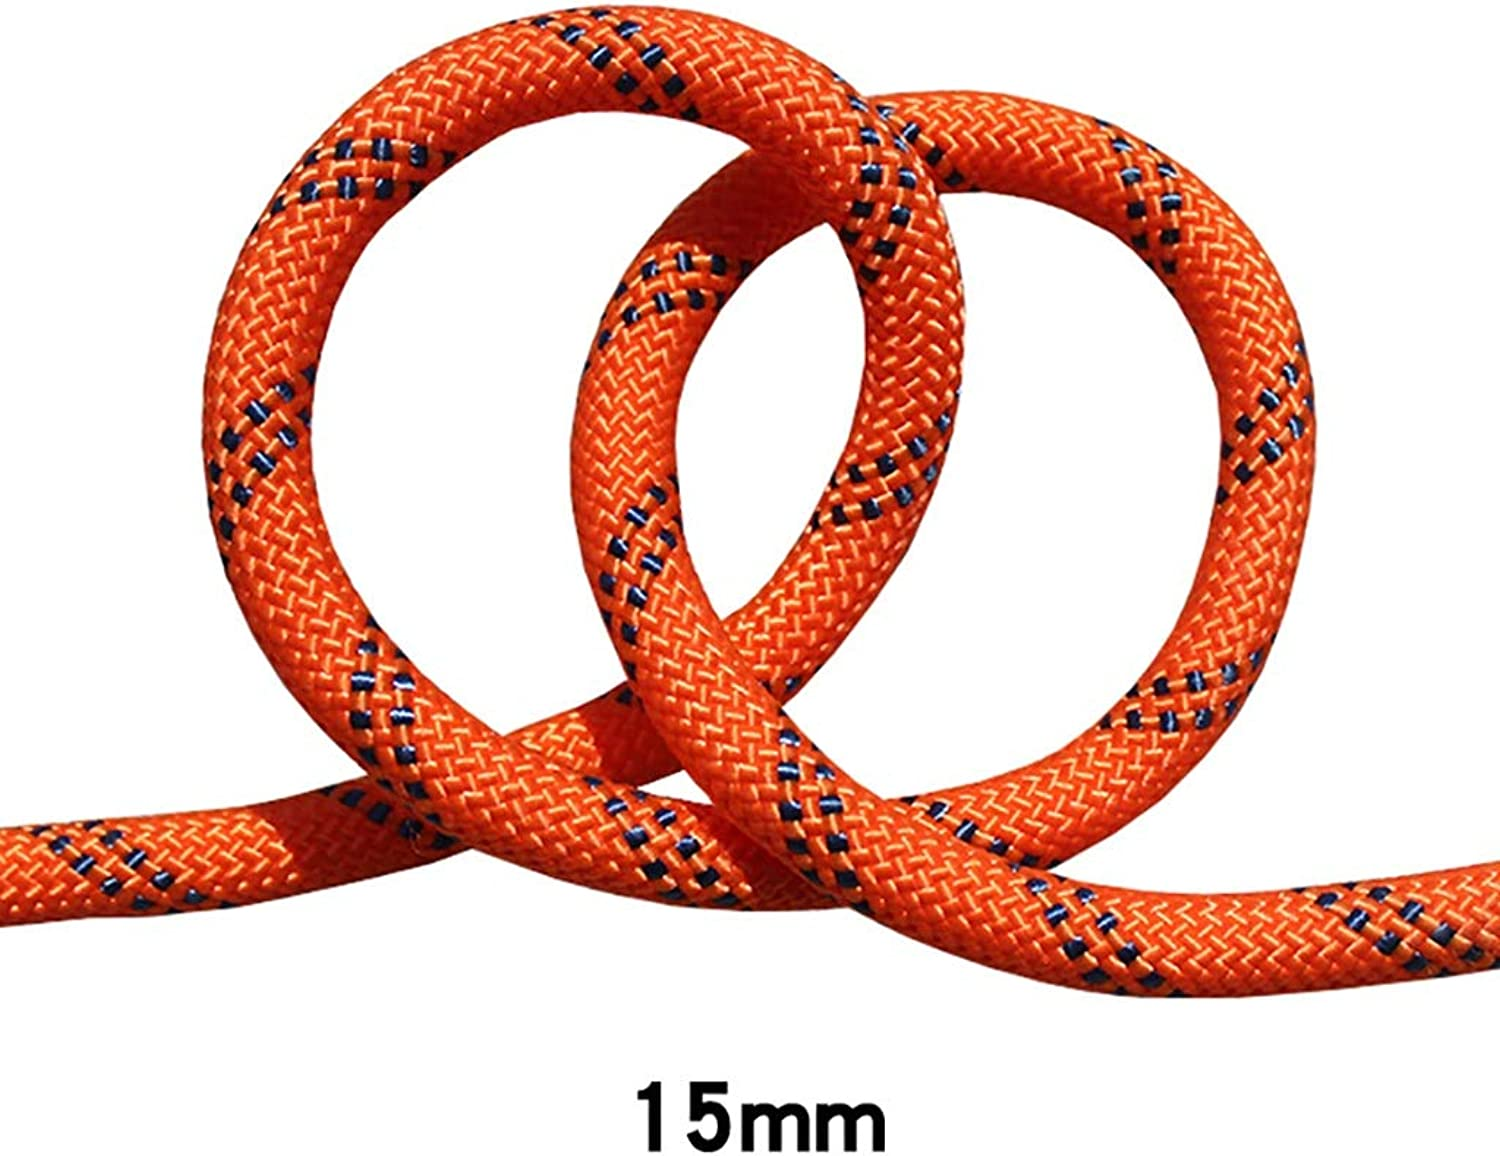 QARYYQ Climbing Rope Rappelling Rope Aerial Working Rope Diameter 15mm orange Black Ropes (Size   40m)